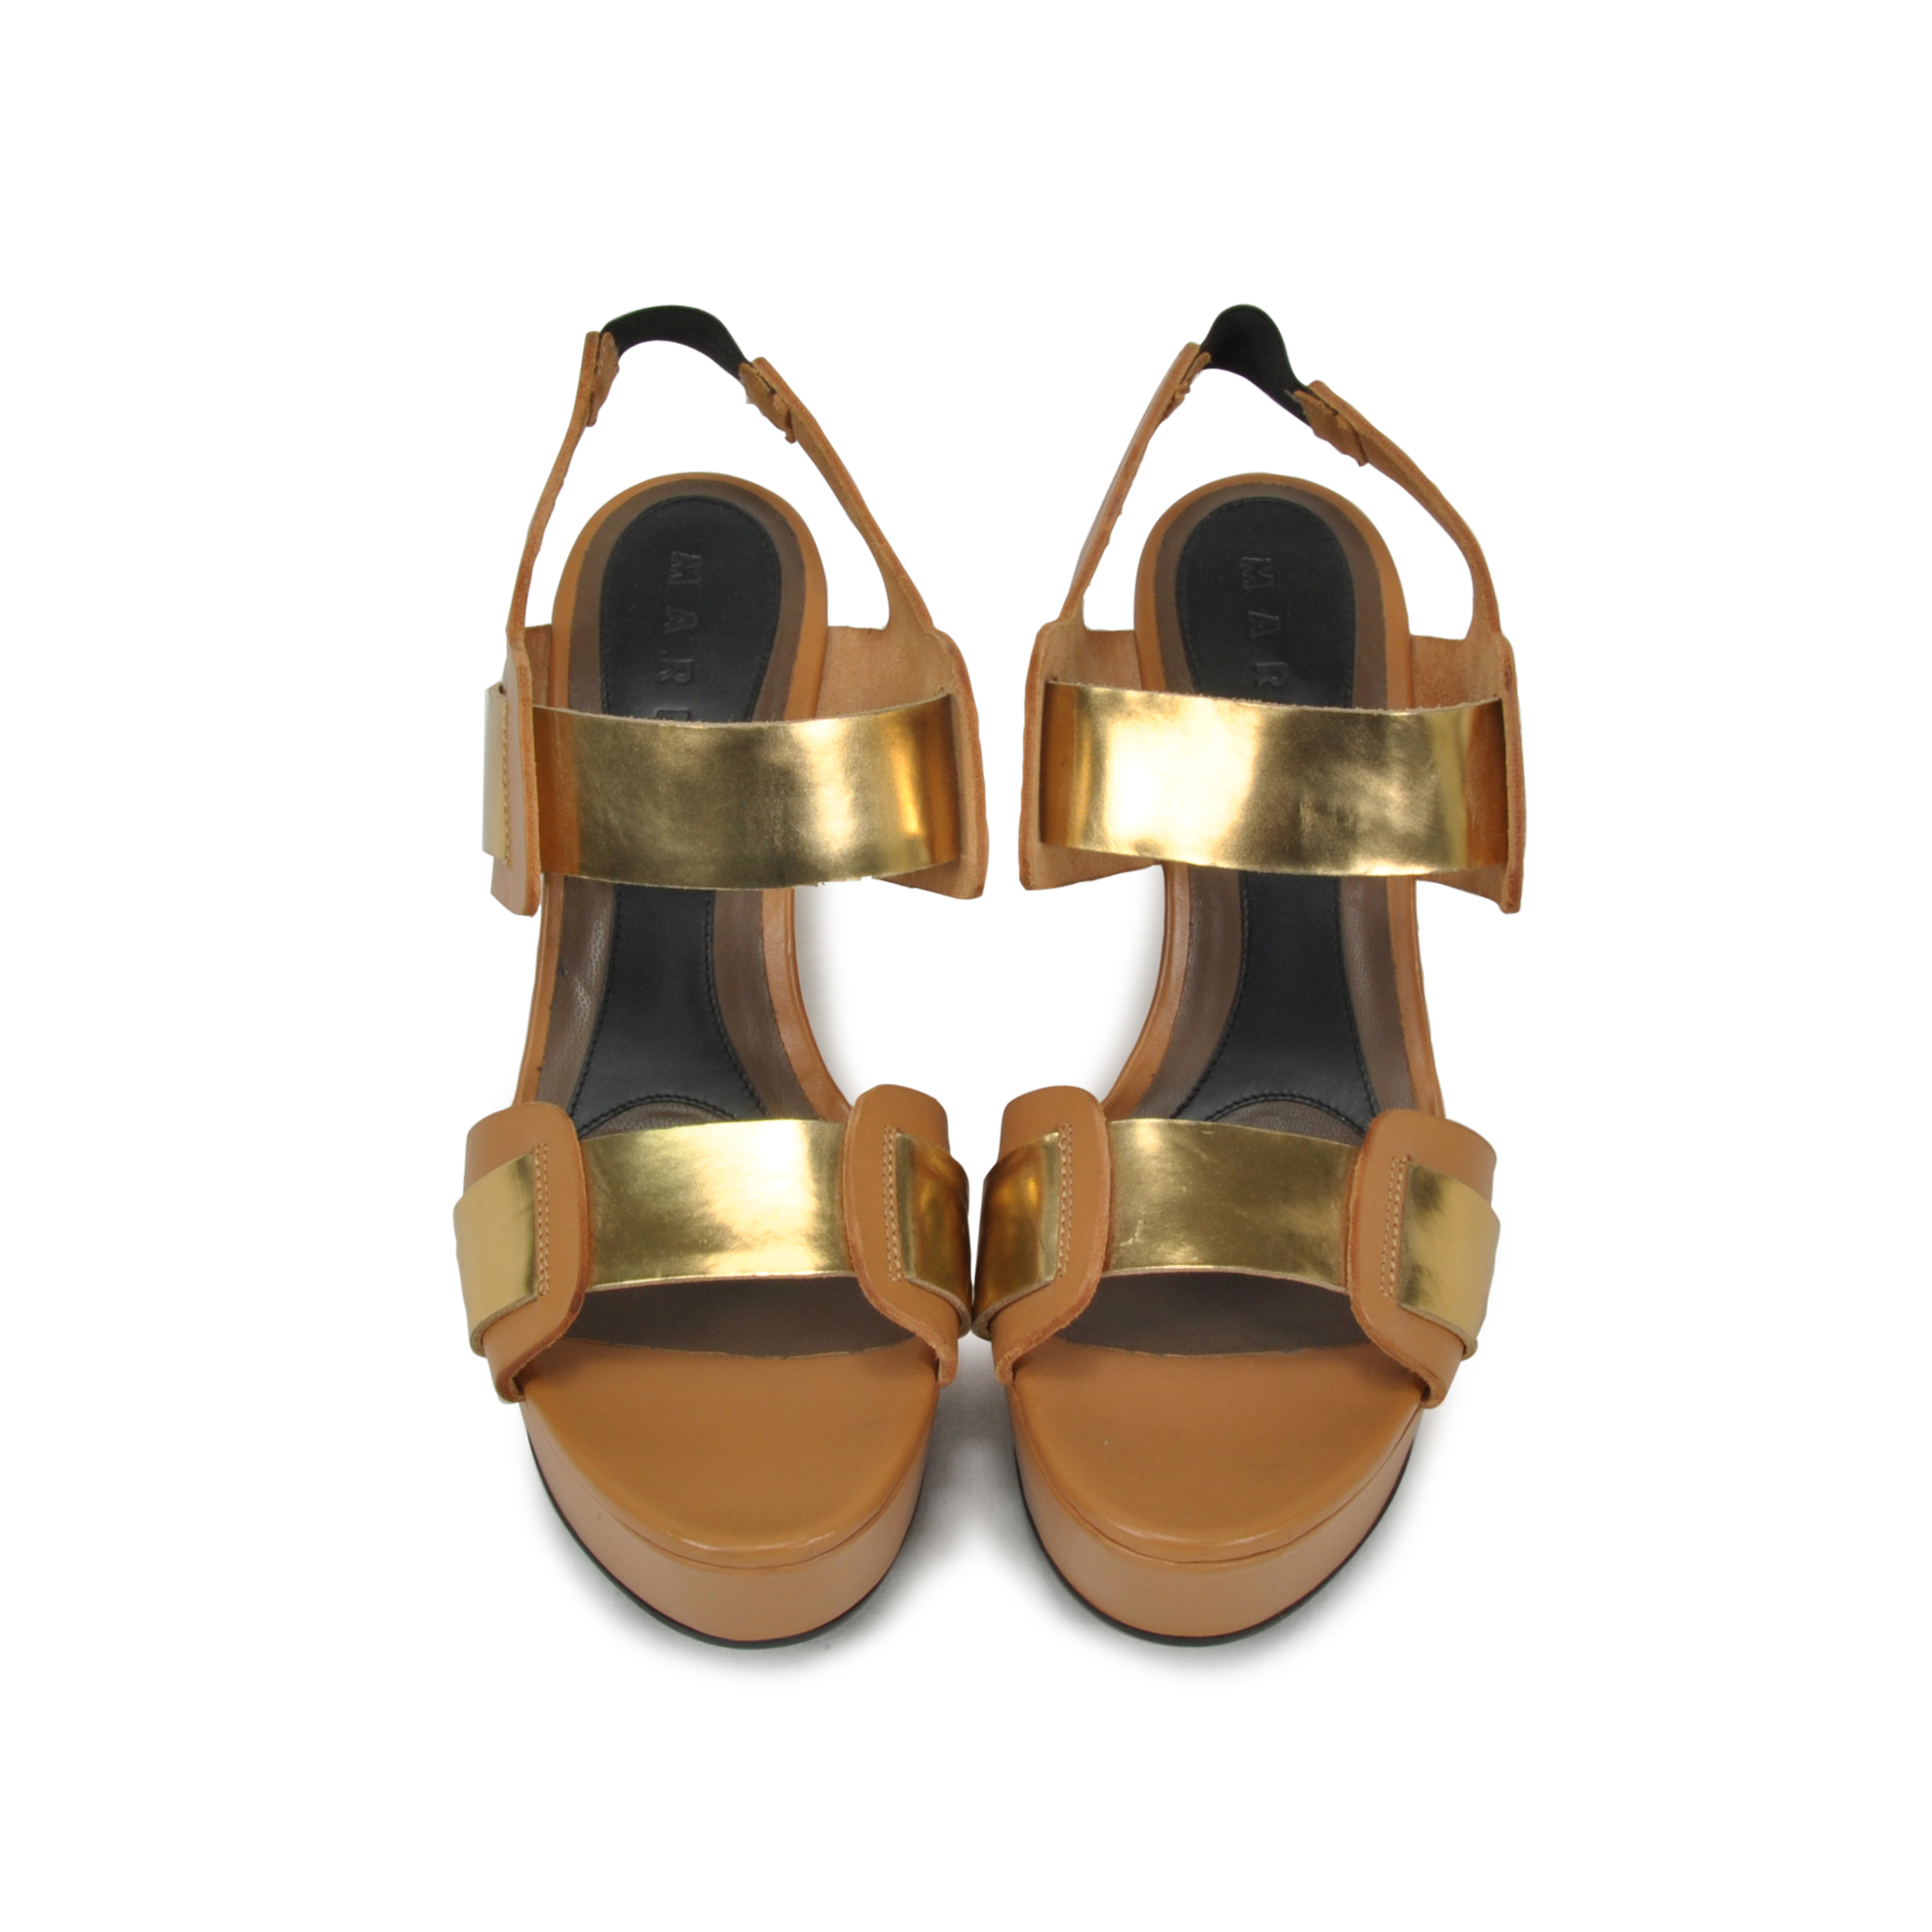 7b44f867653c6 Authentic Second Hand Marni Strap Platform Wedges (PSS-260-00005 ...